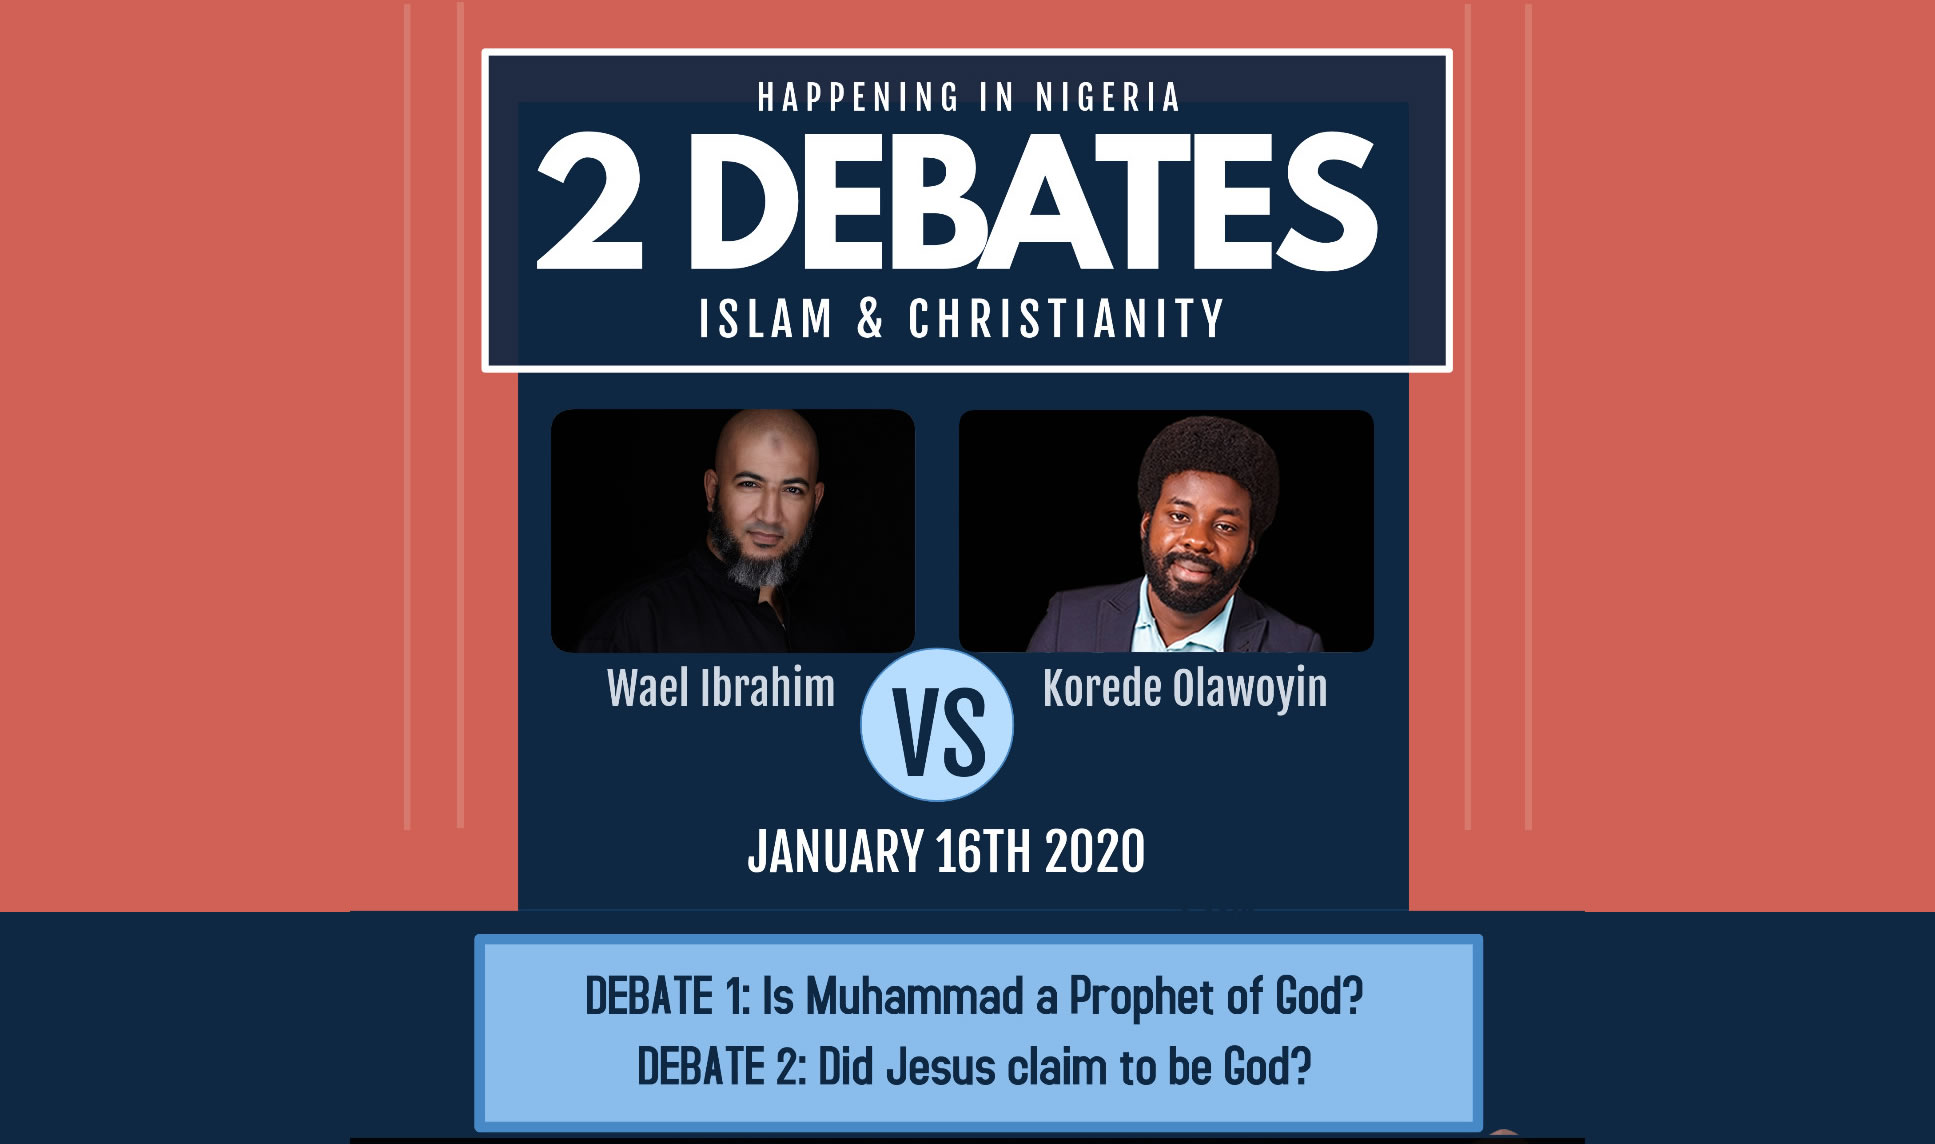 Korede and Wael debate